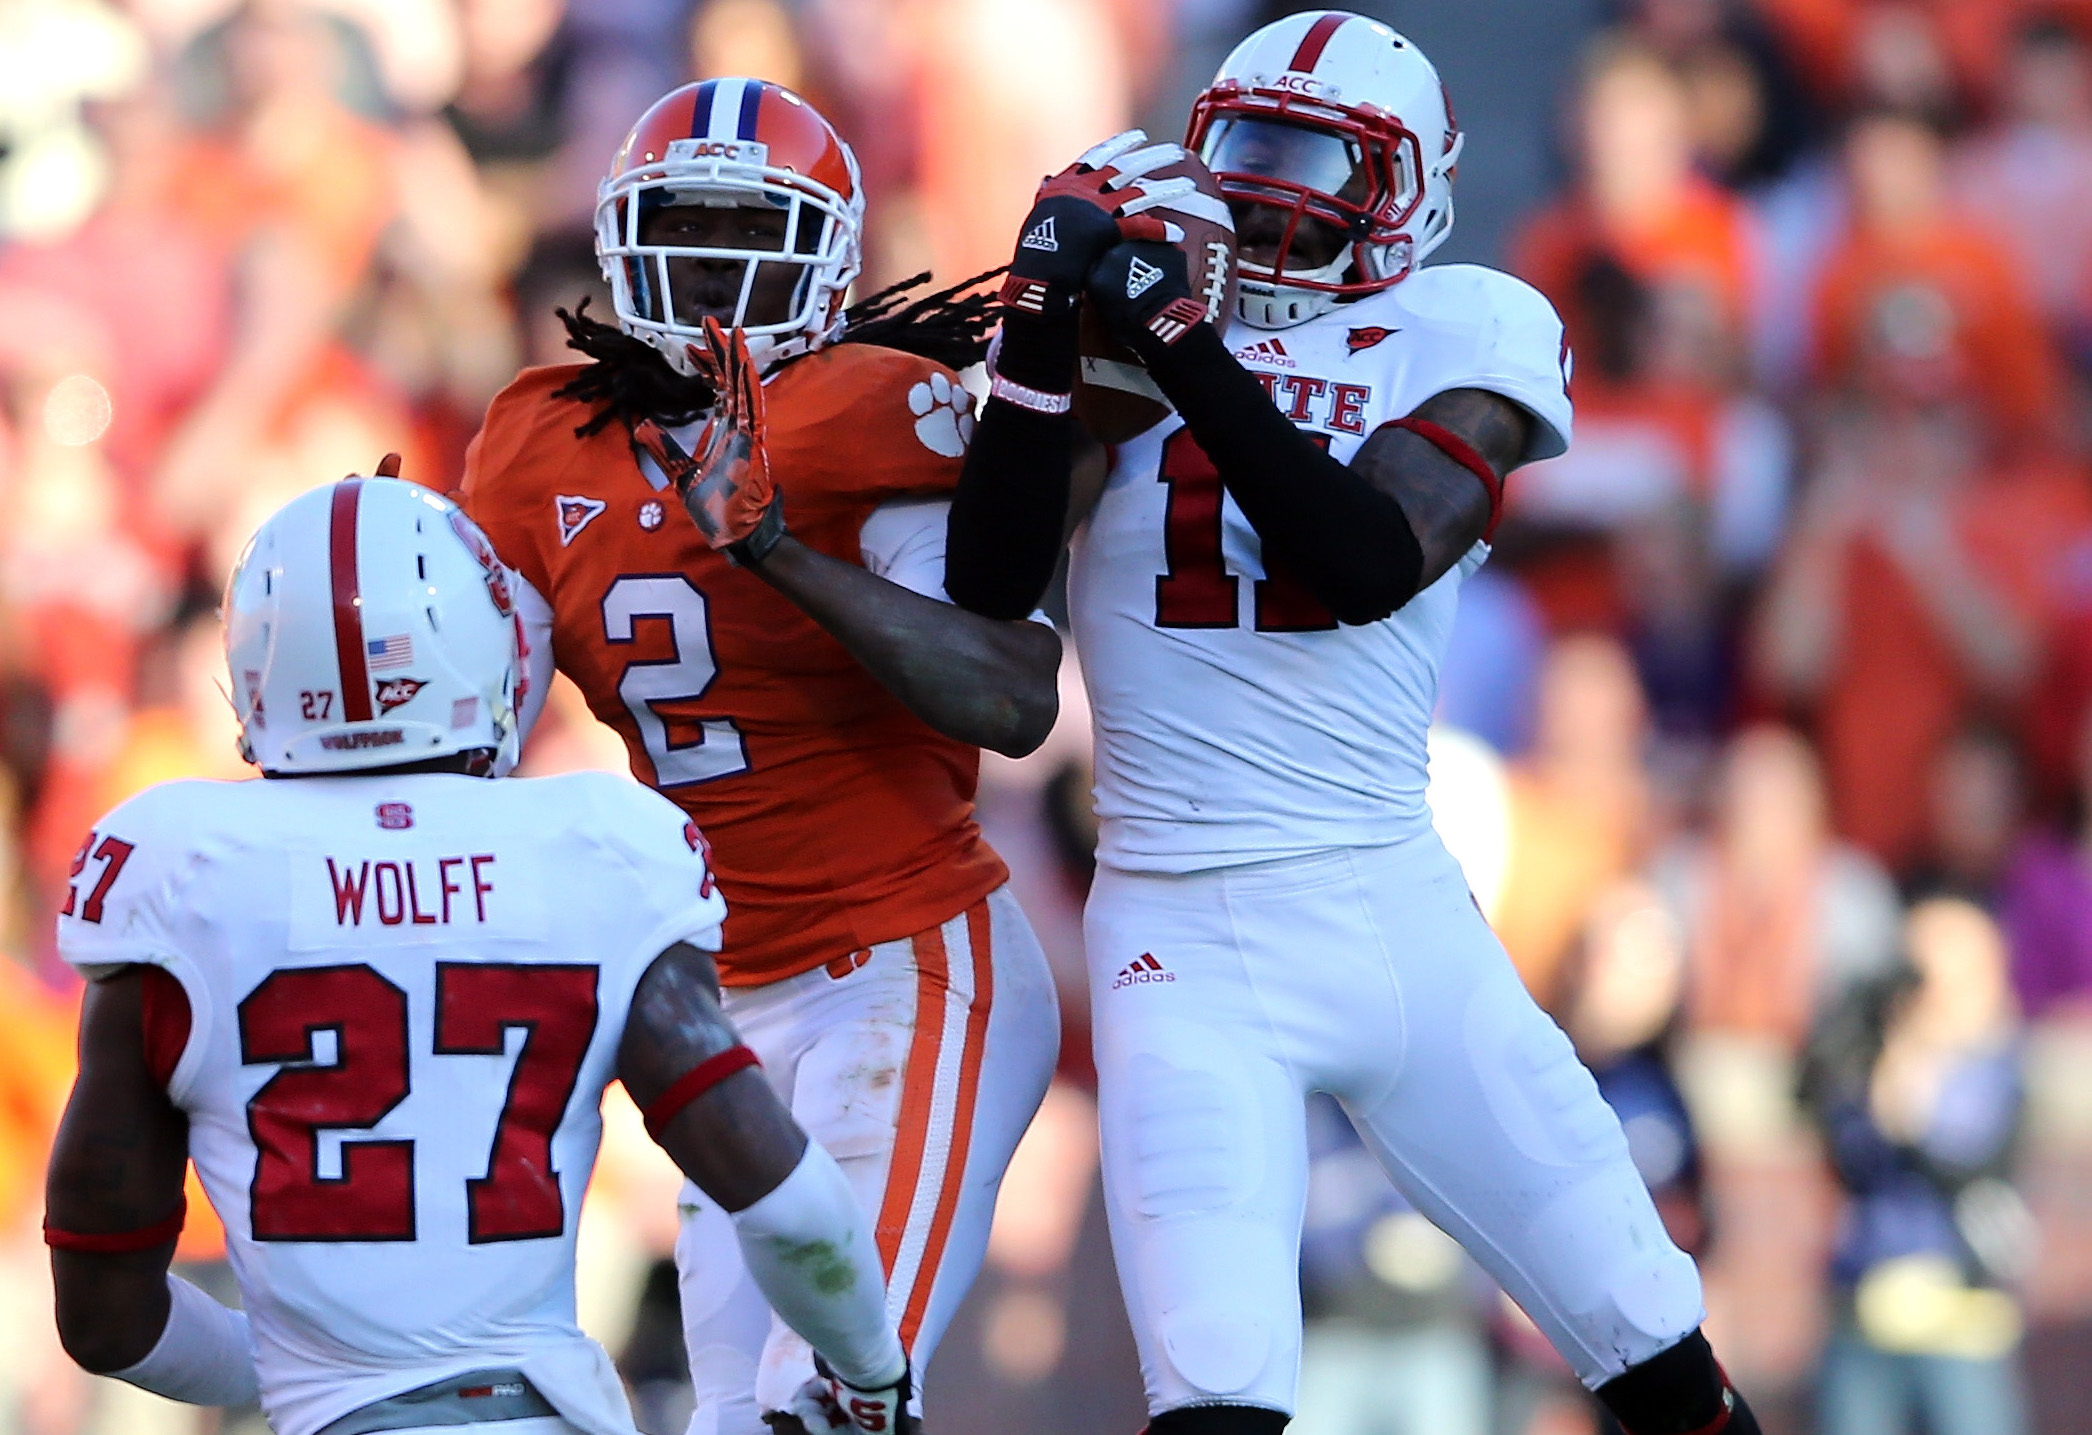 during their game at Memorial Stadium on November 17, 2012 in Clemson, South Carolina.